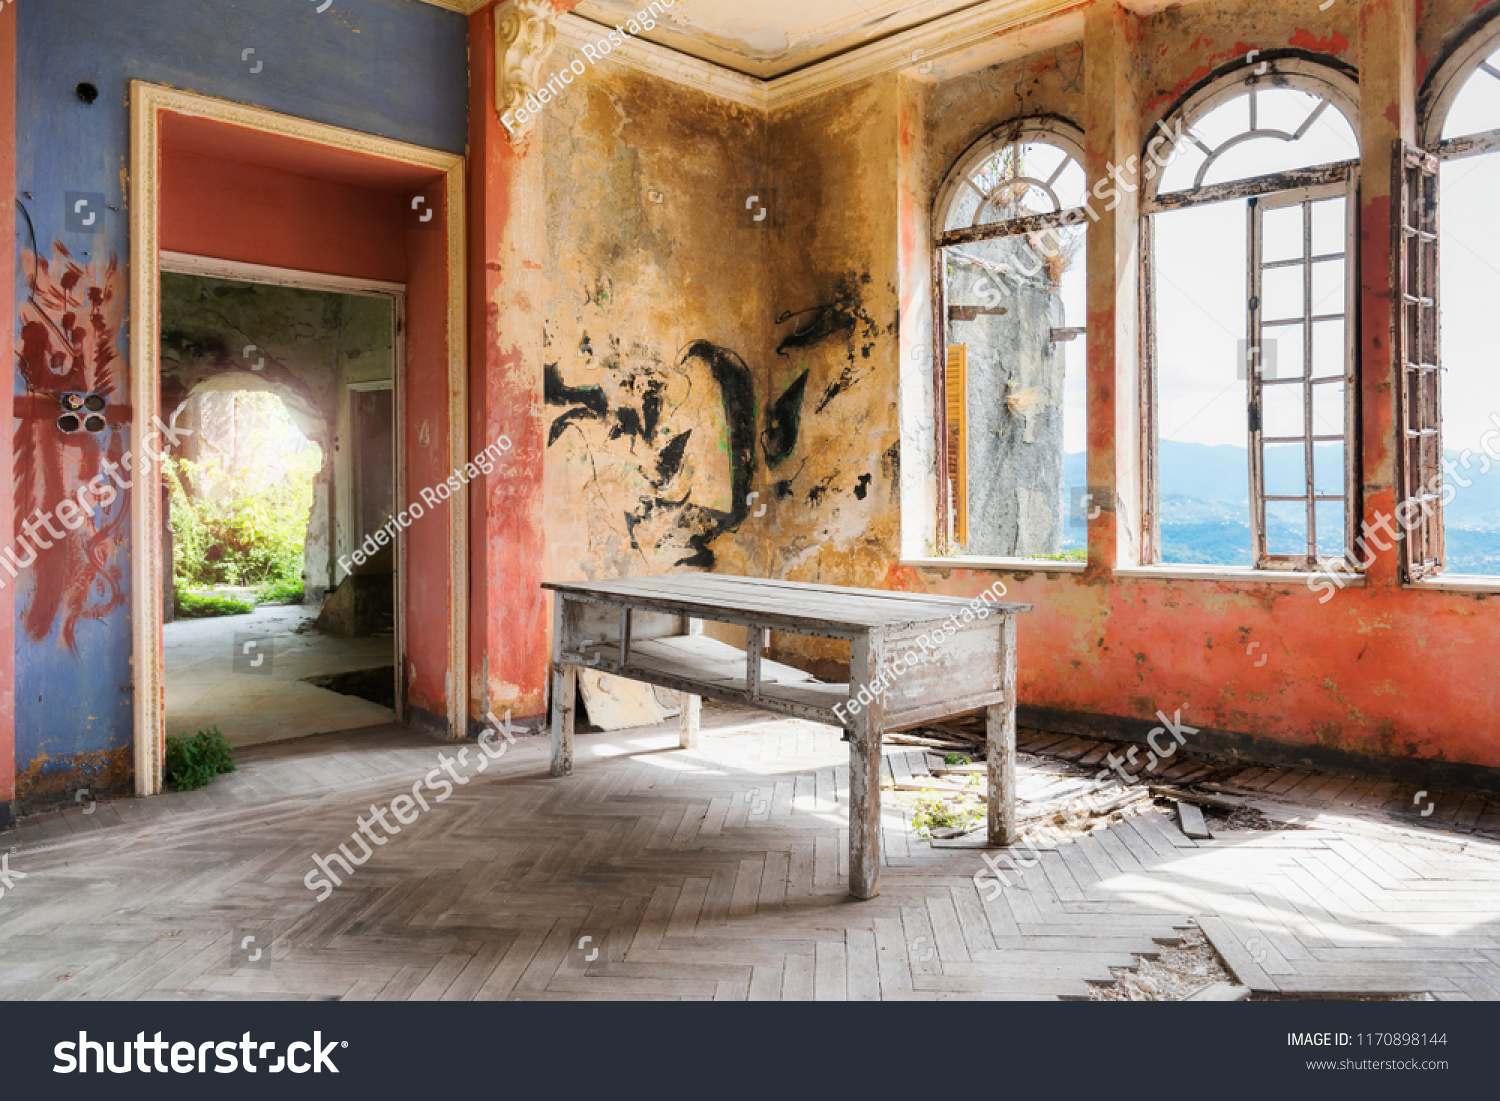 Bagno Design Redbrick Mill Spooky Interior Abandoned Ruined House Stock Photo Edit Now